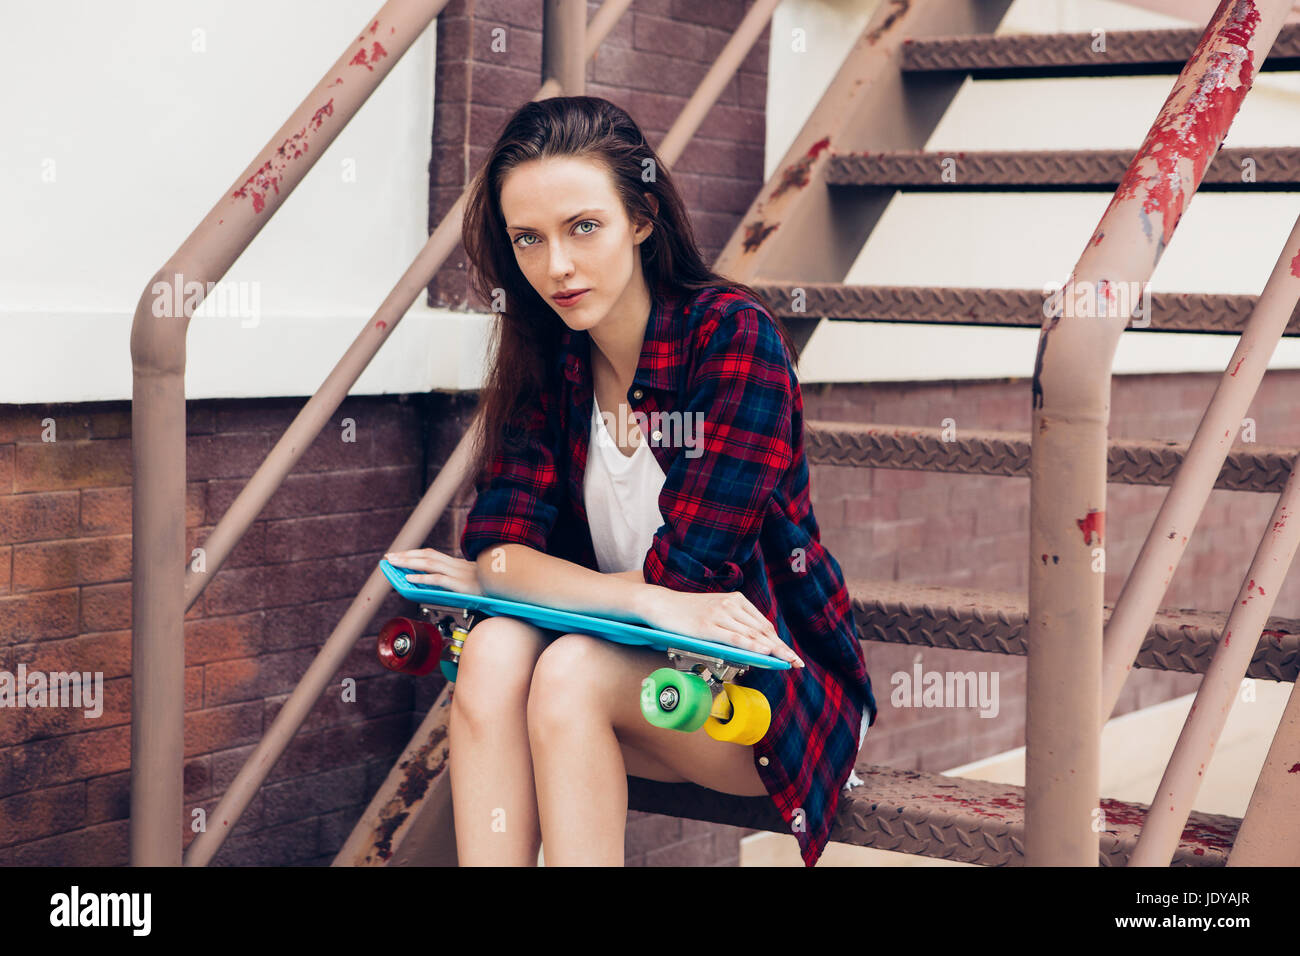 Hipster S Photos   Hipster S Images - Alamy a8810286bba